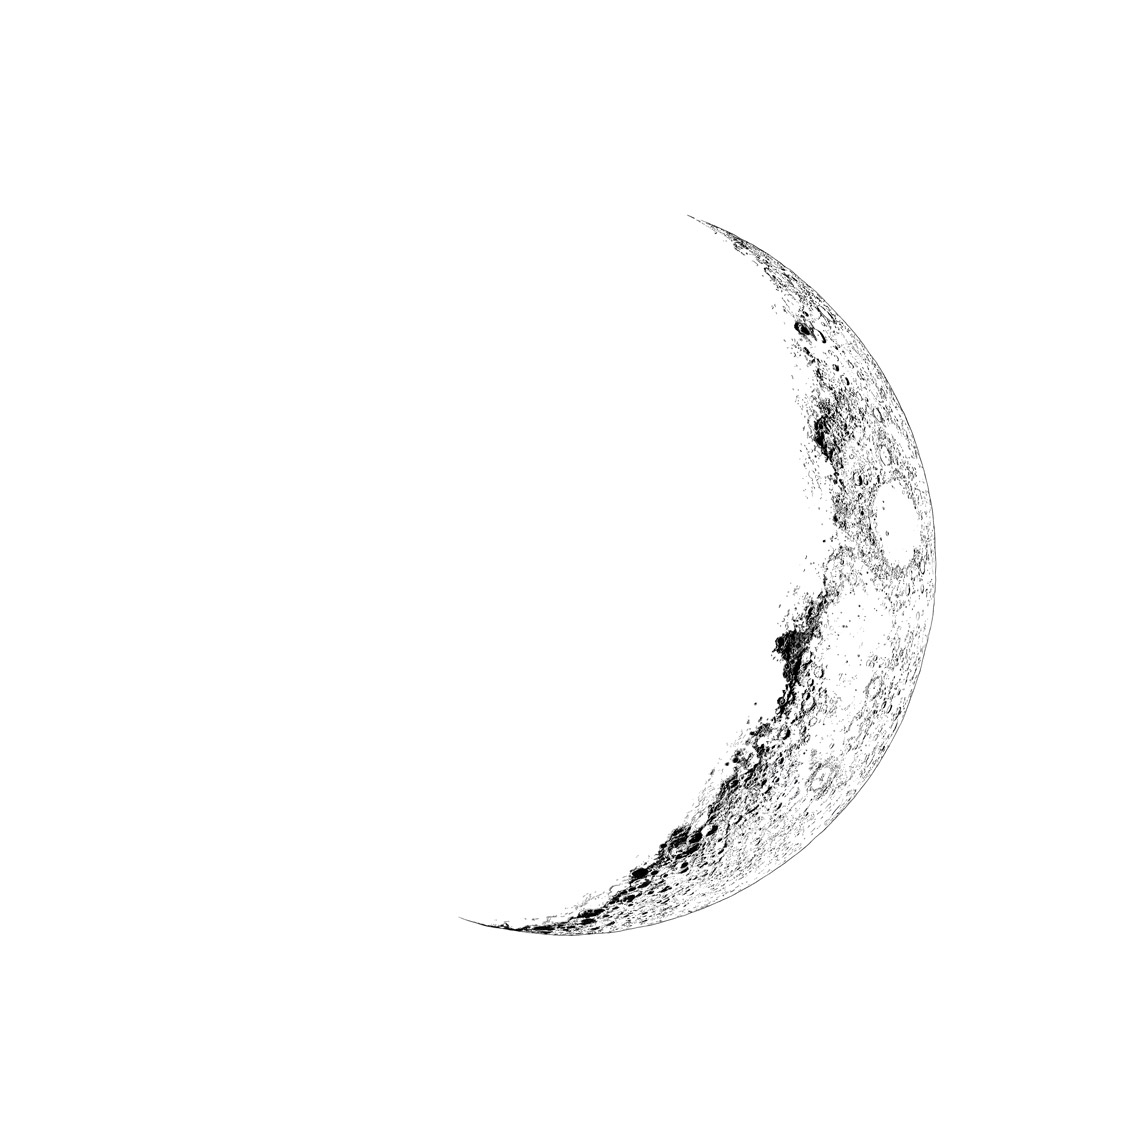 1148x1148 Cresent Moon Drawing Drawn Lunar Crescent Moon